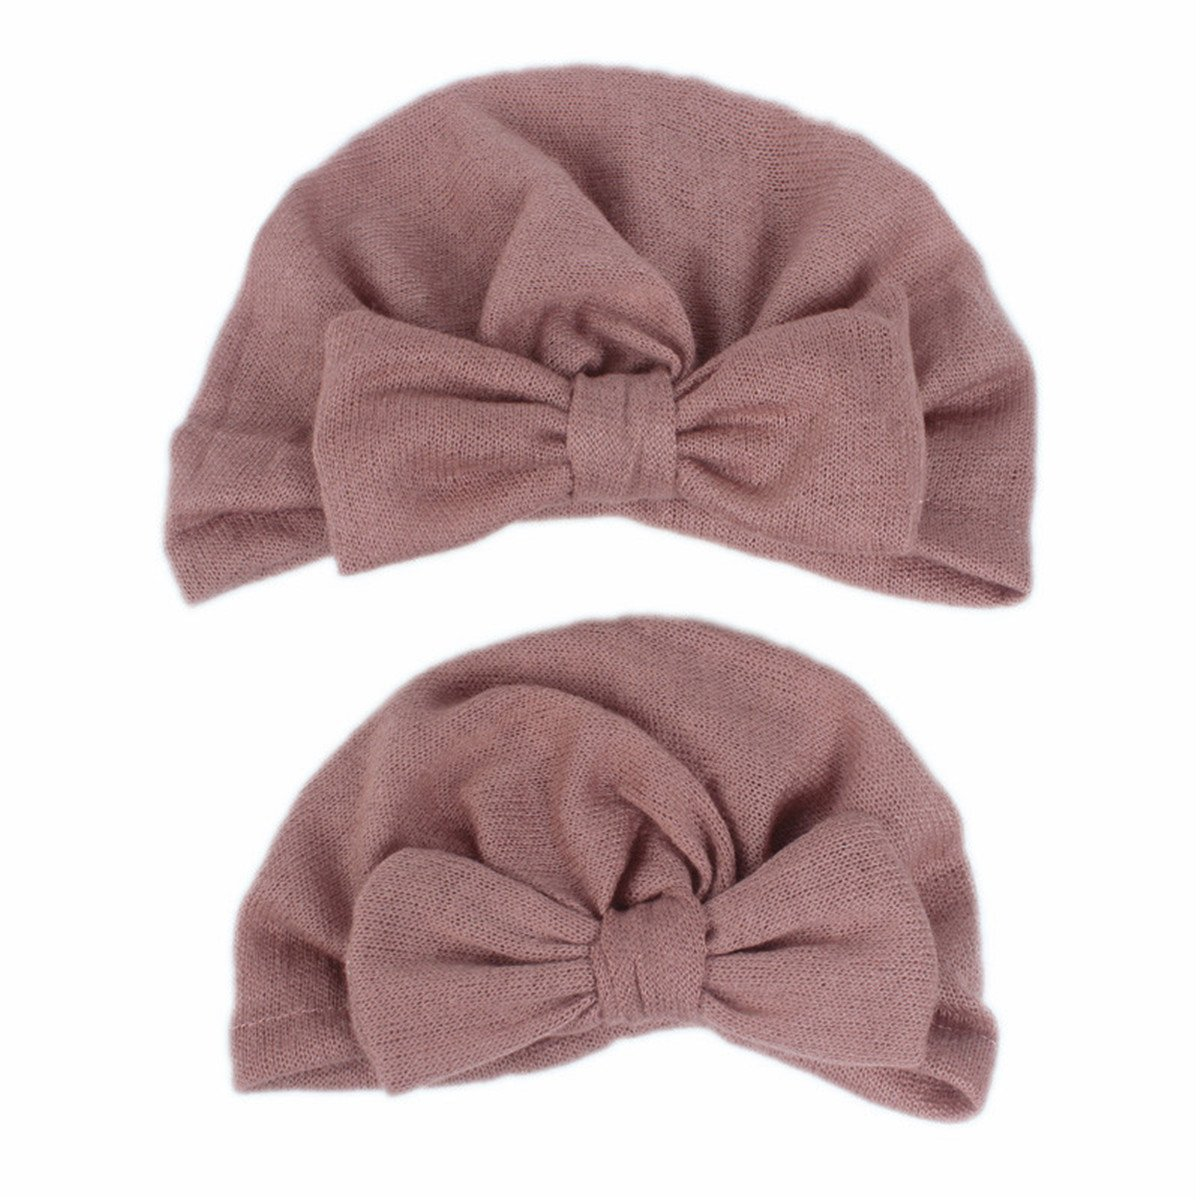 Qhome Mommy and Me Set Jersey Bow Turban Hats for Womens Kids Girls Gifts Baby Kids Headcover Hat Fashion Women Bowknot Cap